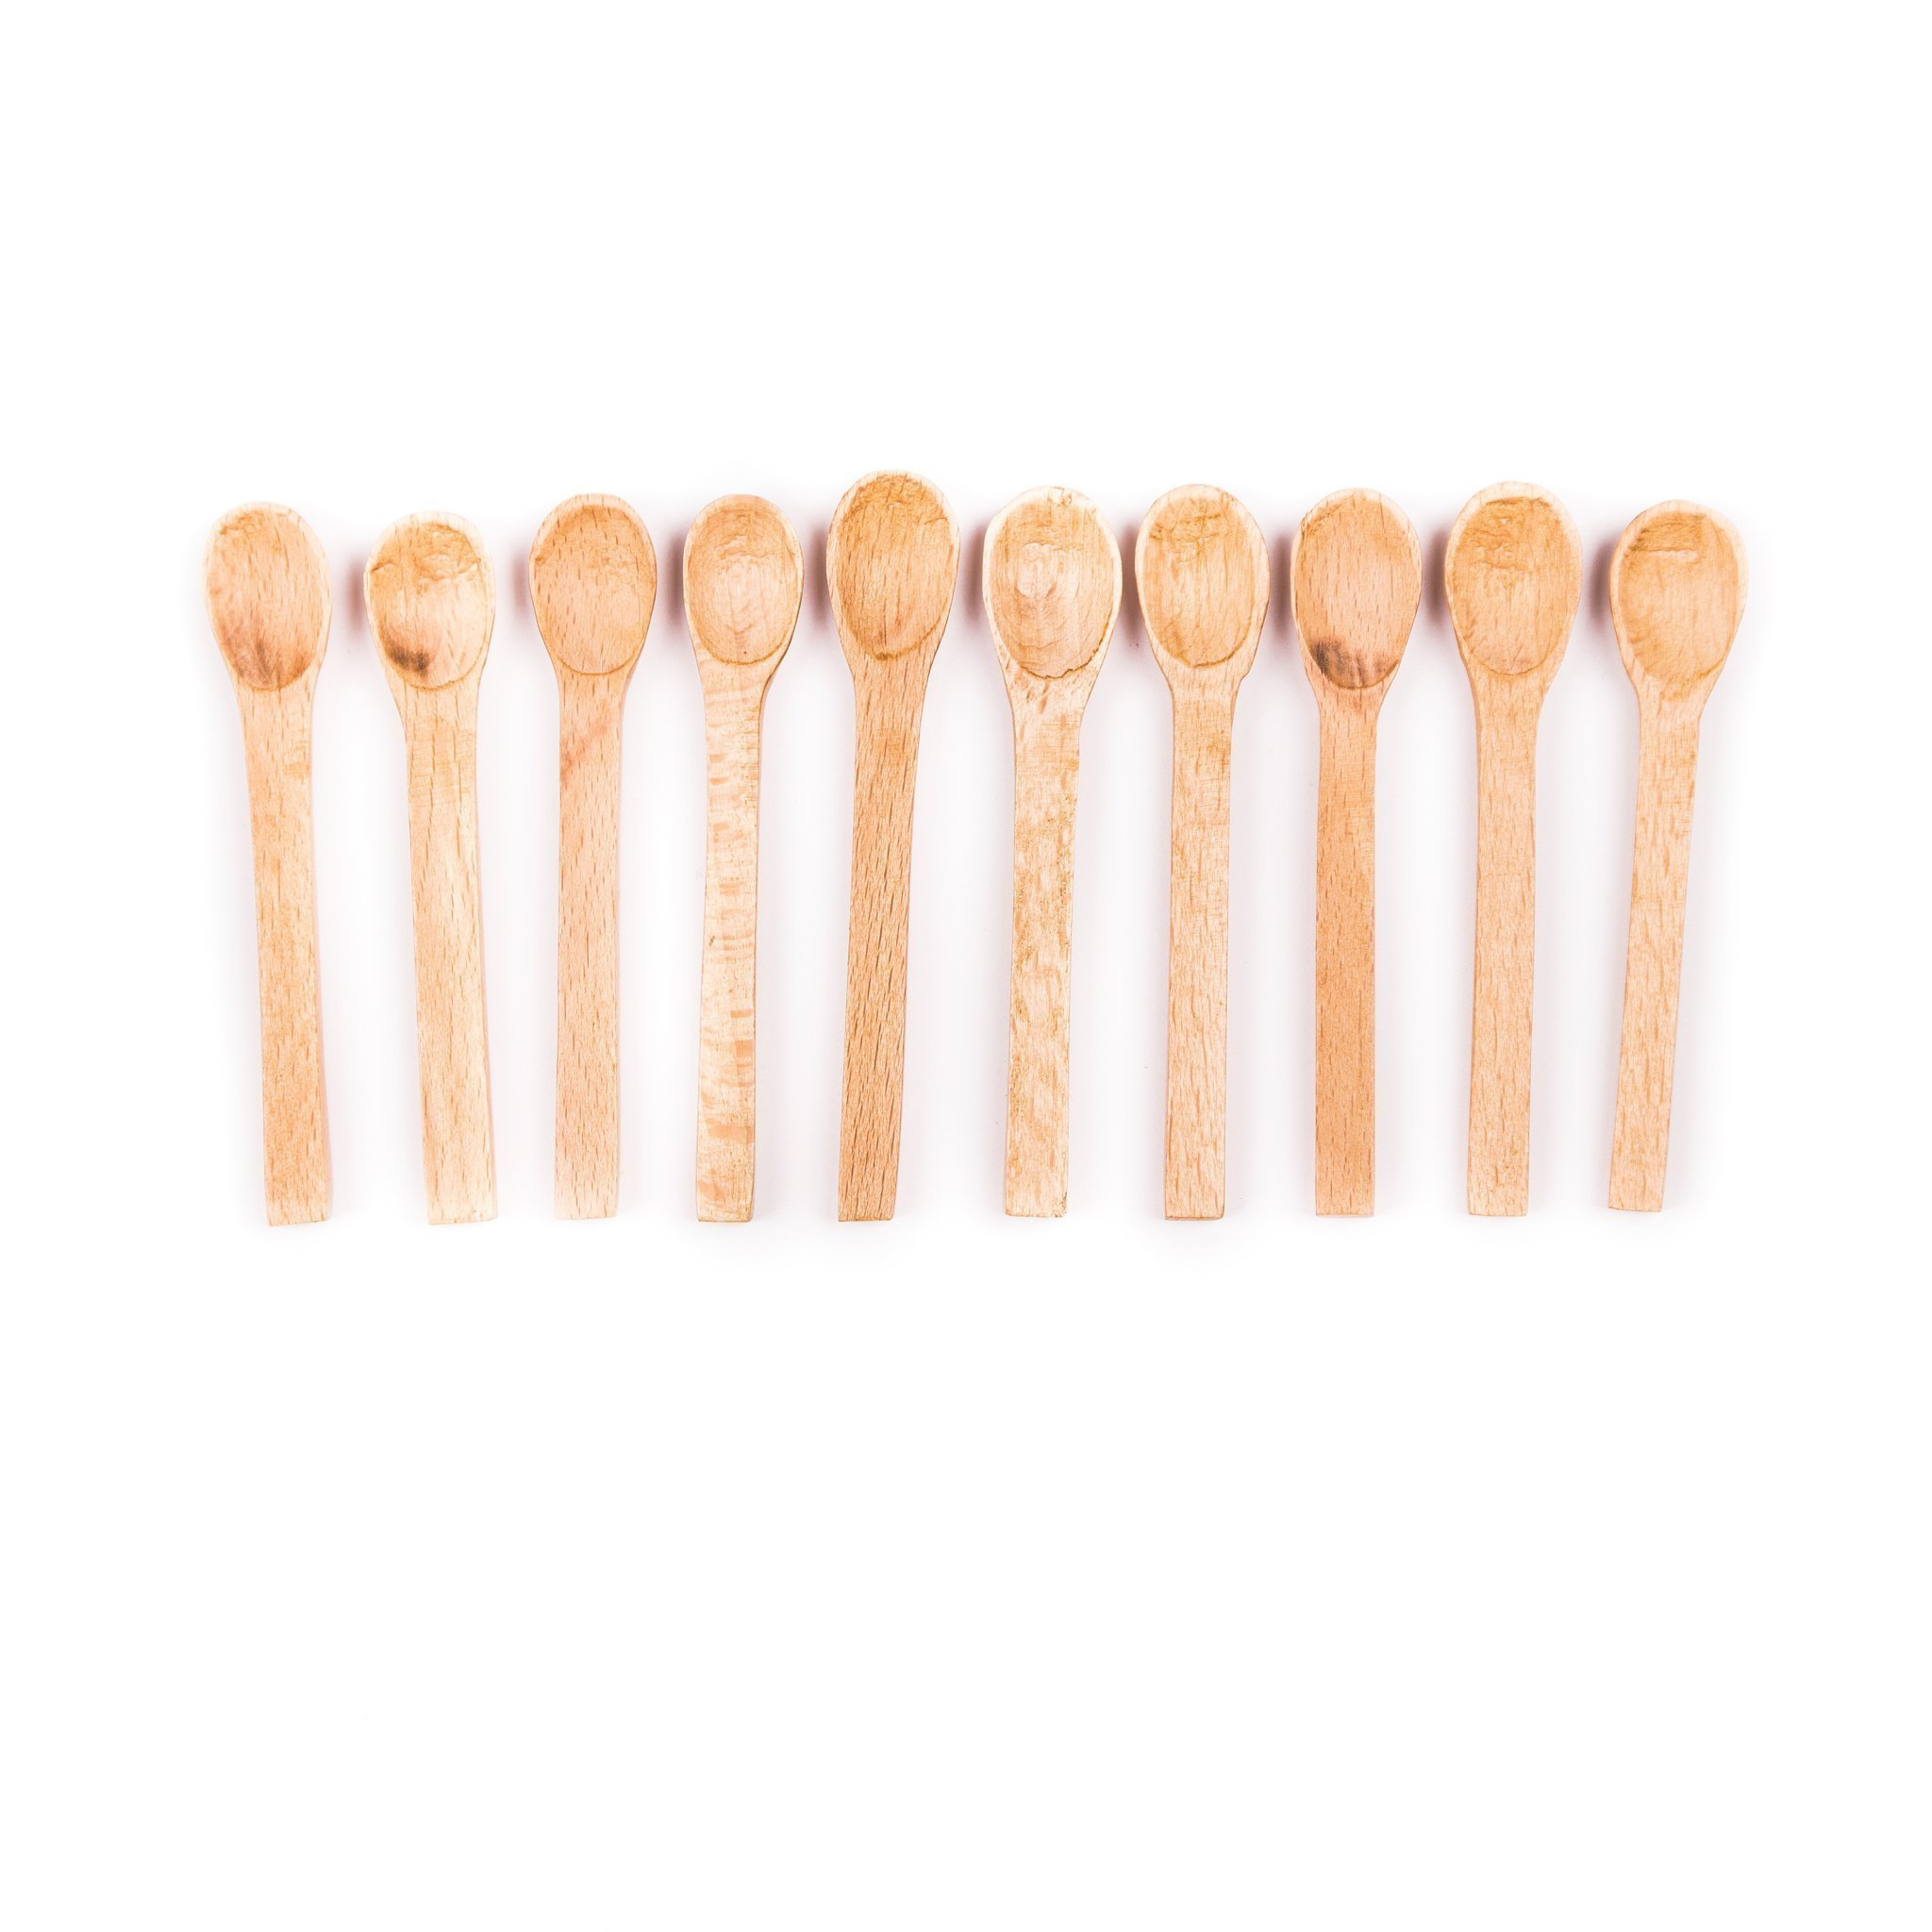 Small spatula in wood 10 pack